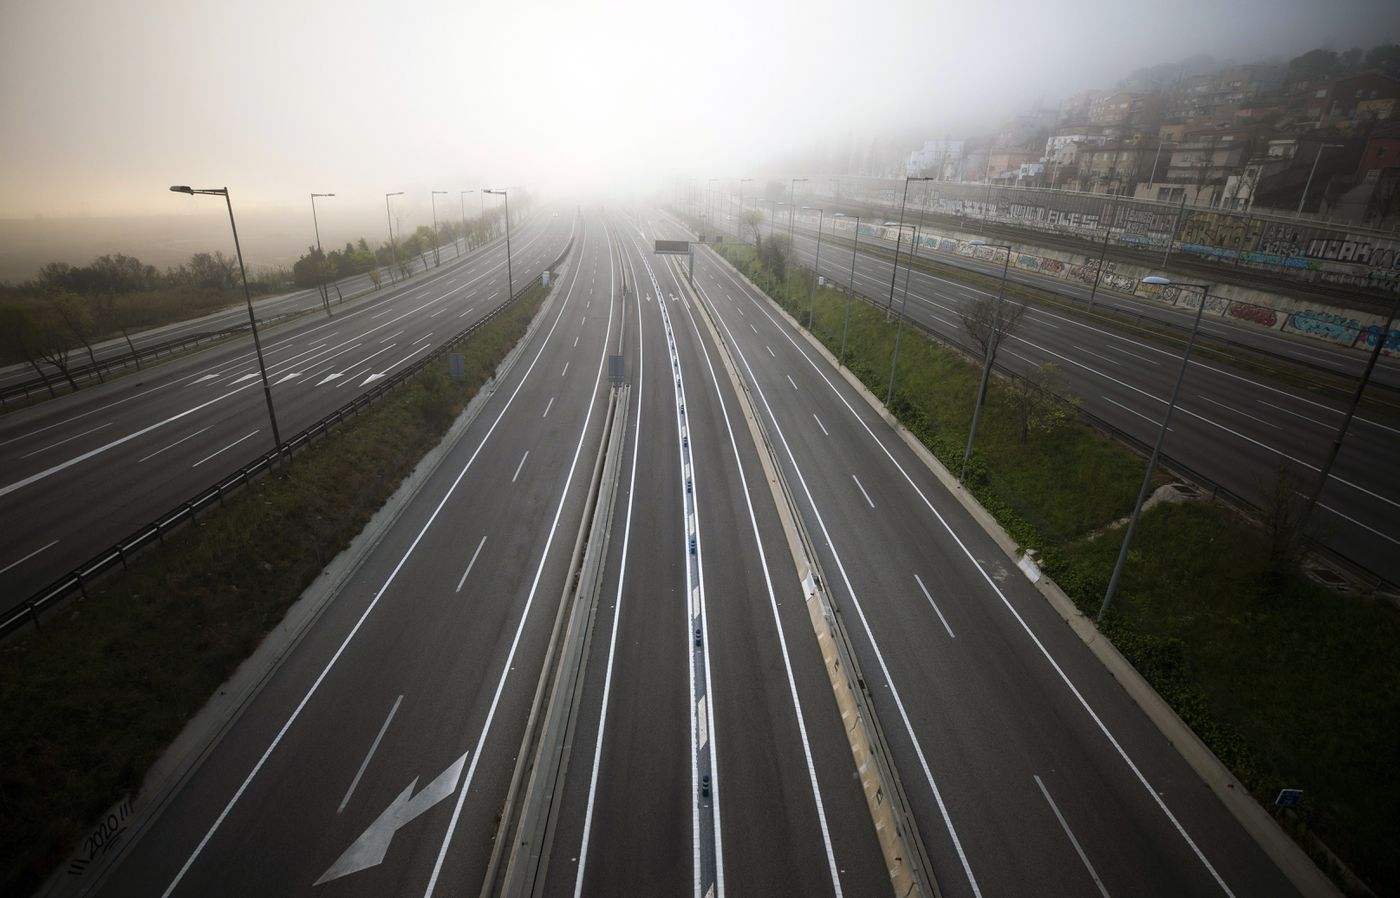 The highway leading to Barcelona is seen empty of cars on Sunday, March 15, 2020. Spain's government announced Saturday that it is placing tight restrictions on movements and closing restaurants and other establishments in the nation of 46 million people as part of a two-week state of emergency to fight the sharp rise in coronavirus infections. (AP Photo/Emilio Morenatti)